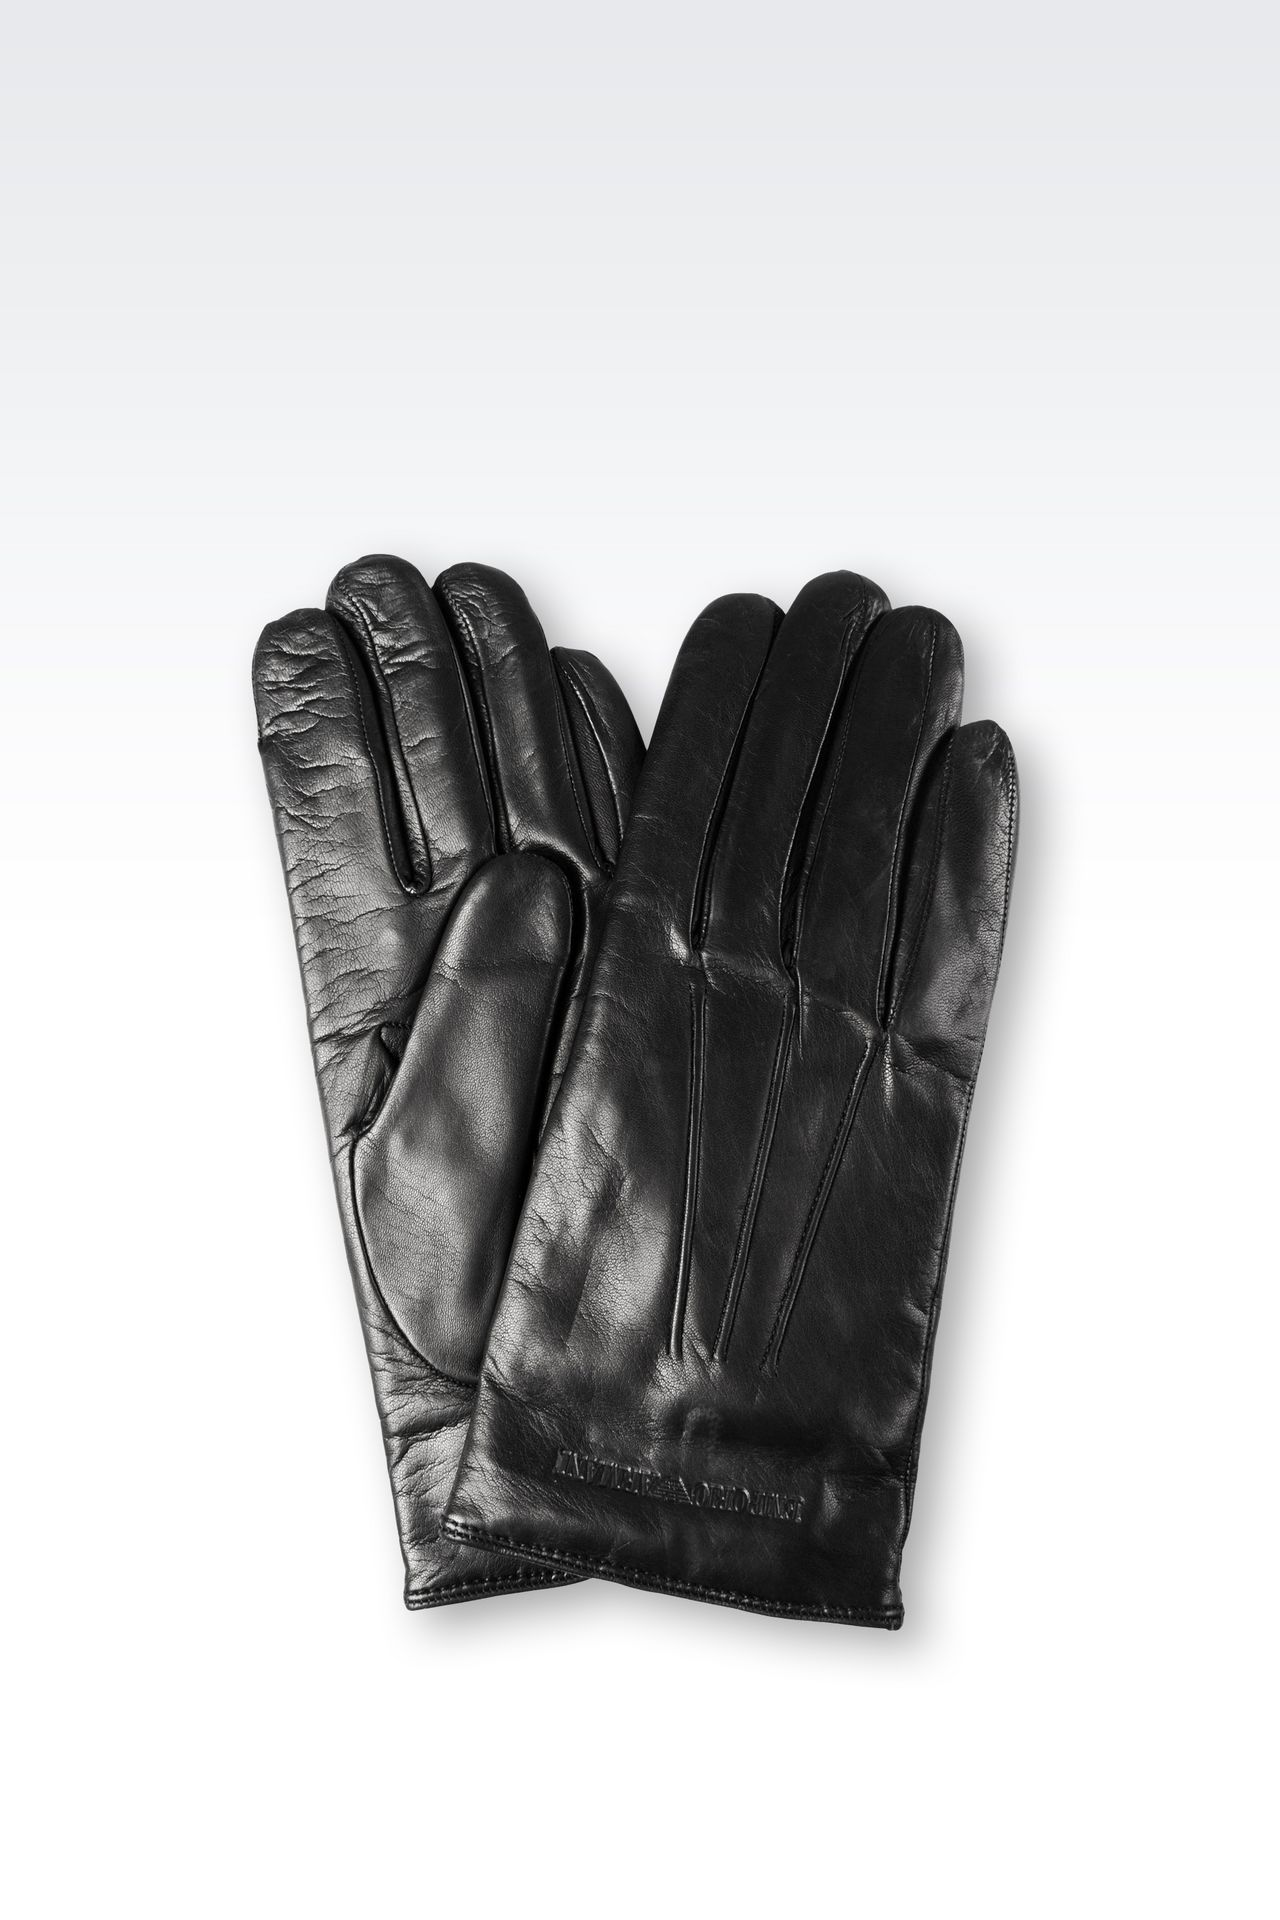 Armani exchange black leather gloves -